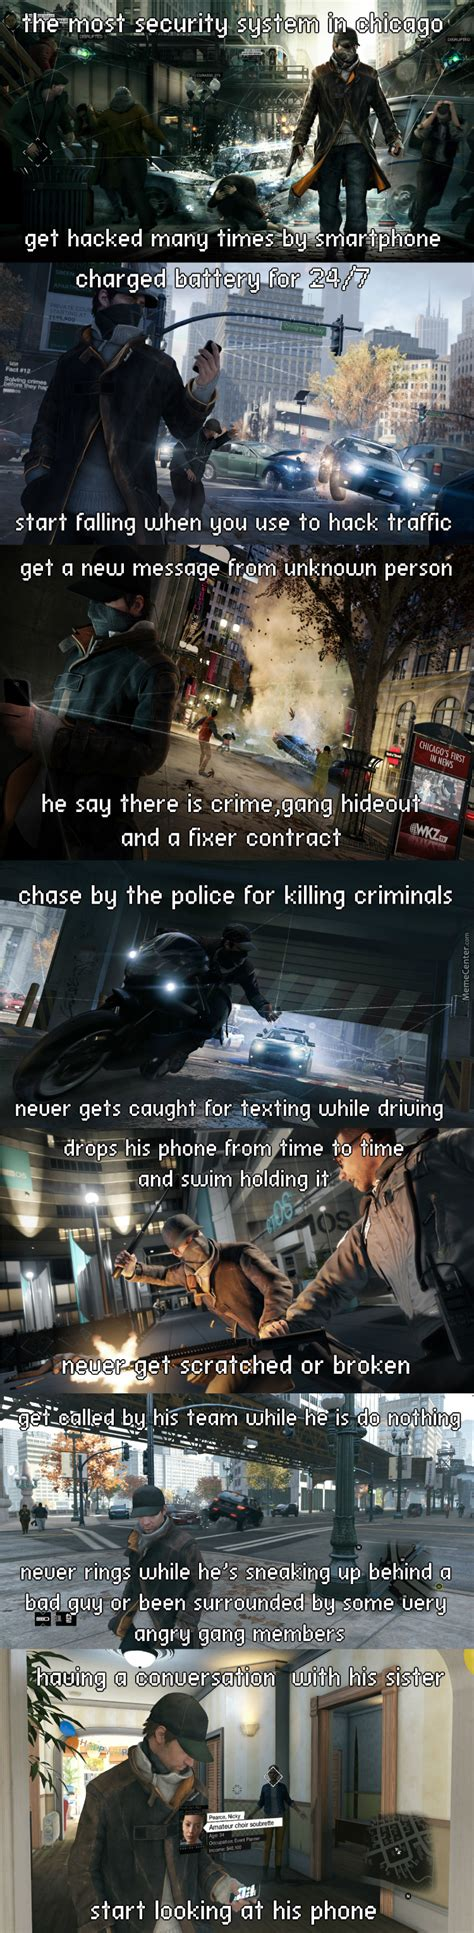 Watch Dogs Meme - watch dogs logic by fares17449 meme center